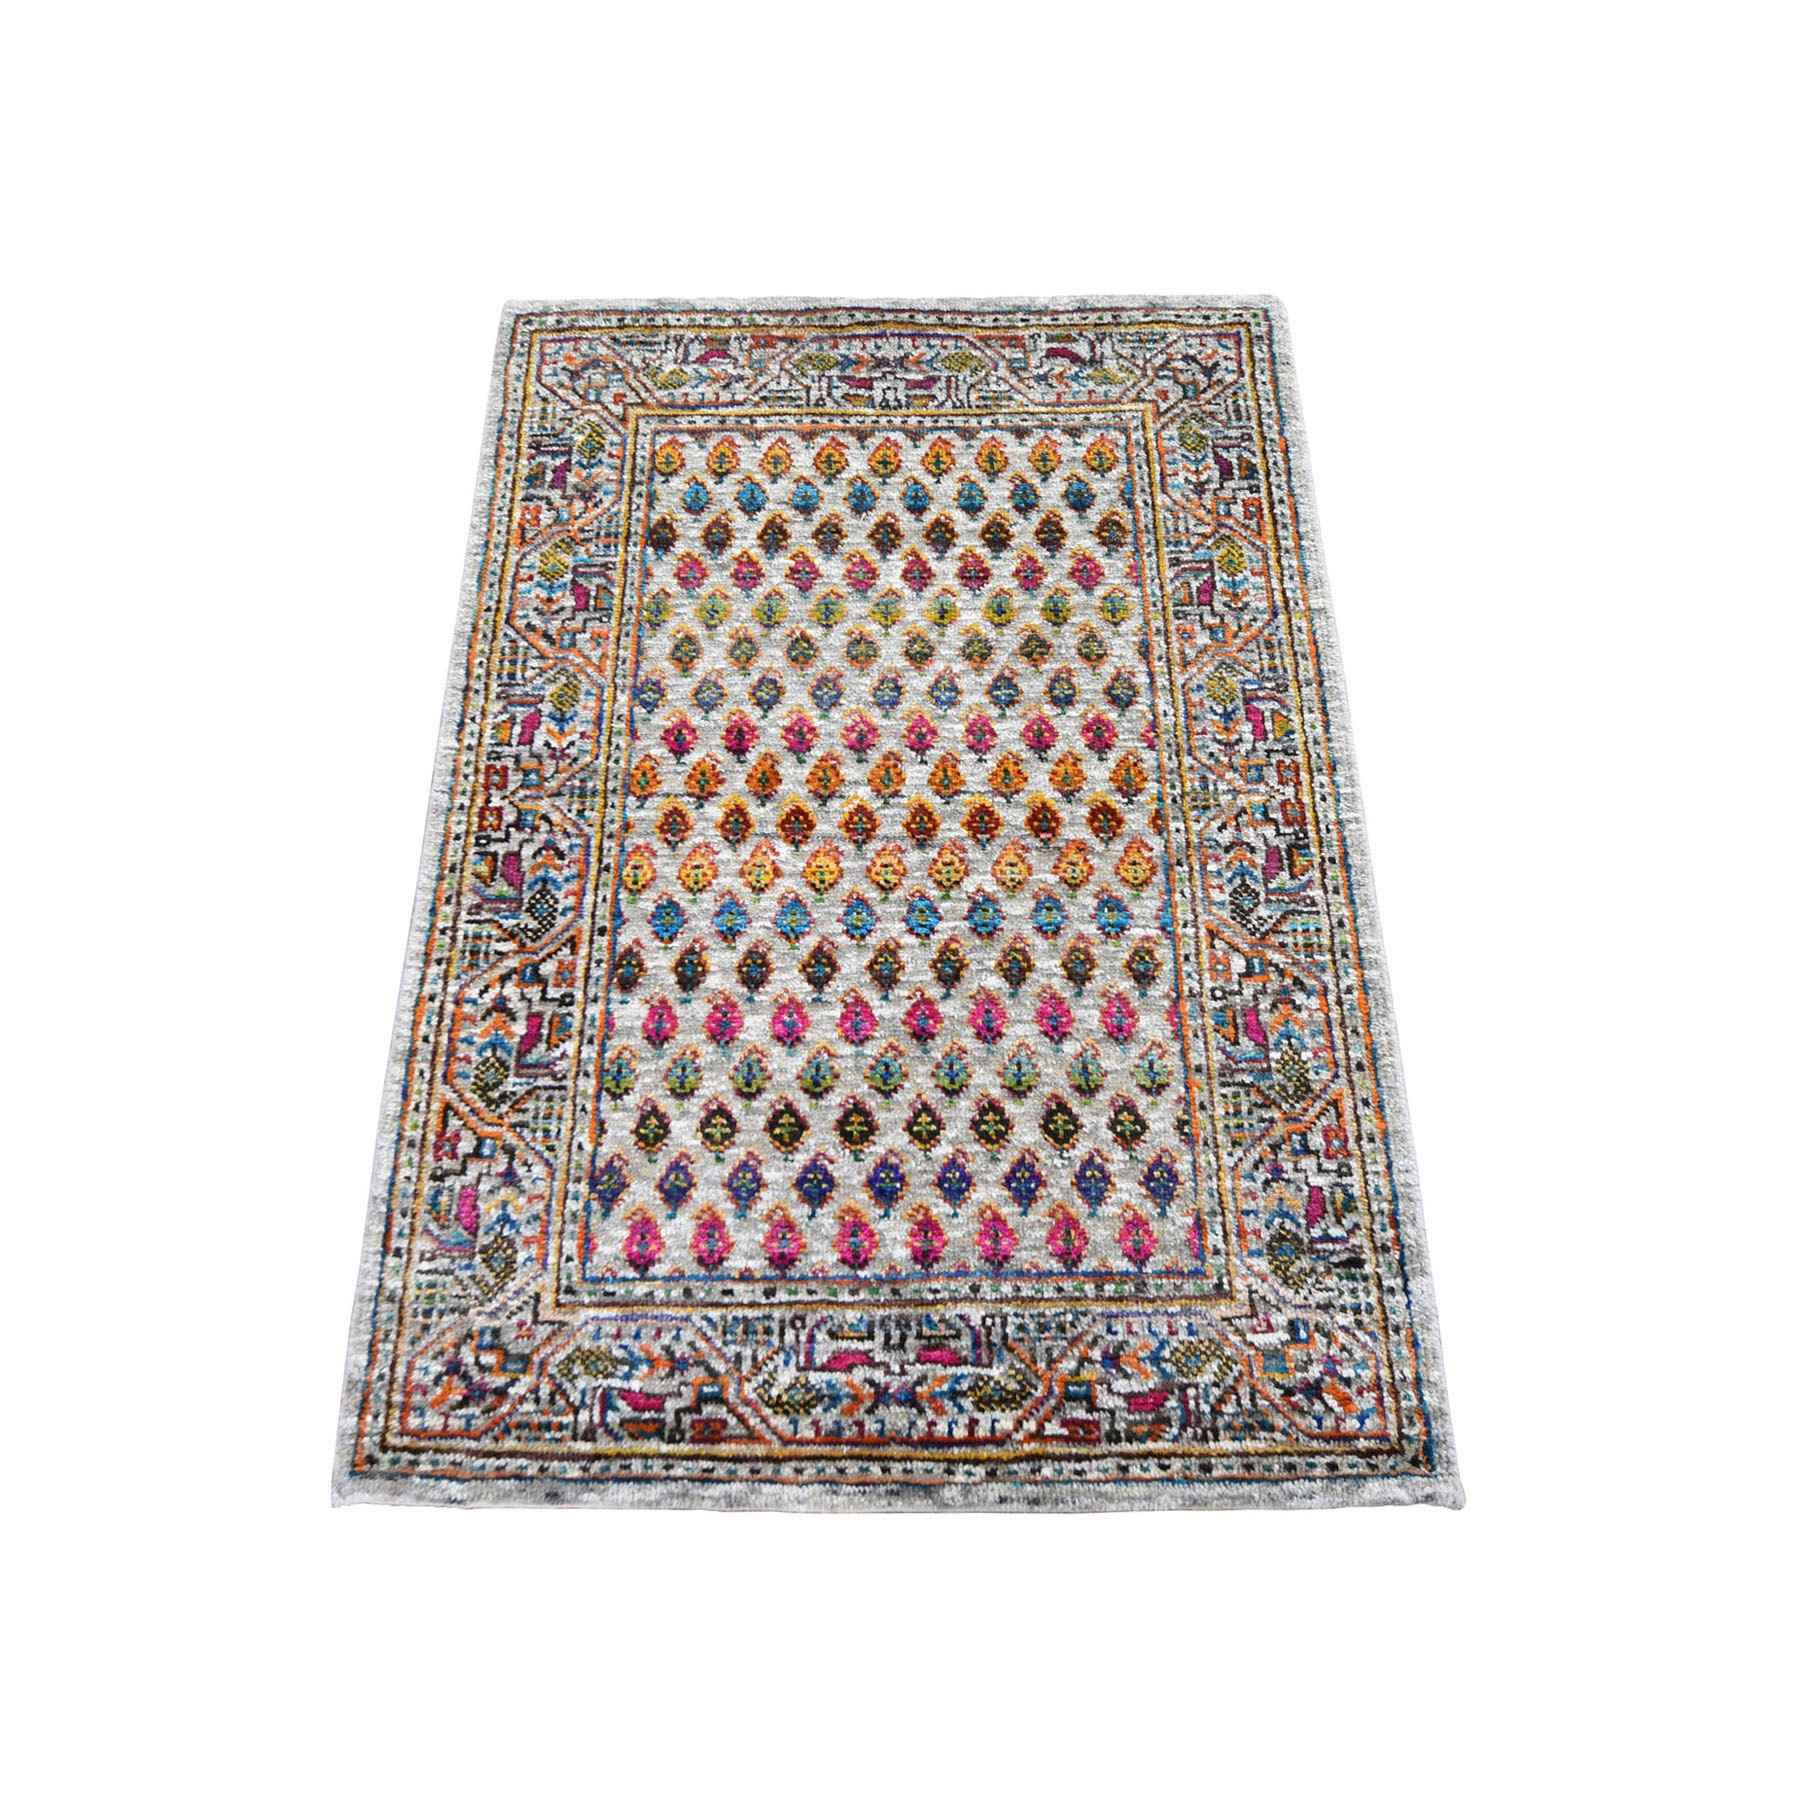 "2'2""X3'1"" Colorful Wool And Sari Silk Sarouk Mir Design Hand Knotted Oriental Rug moad90b6"